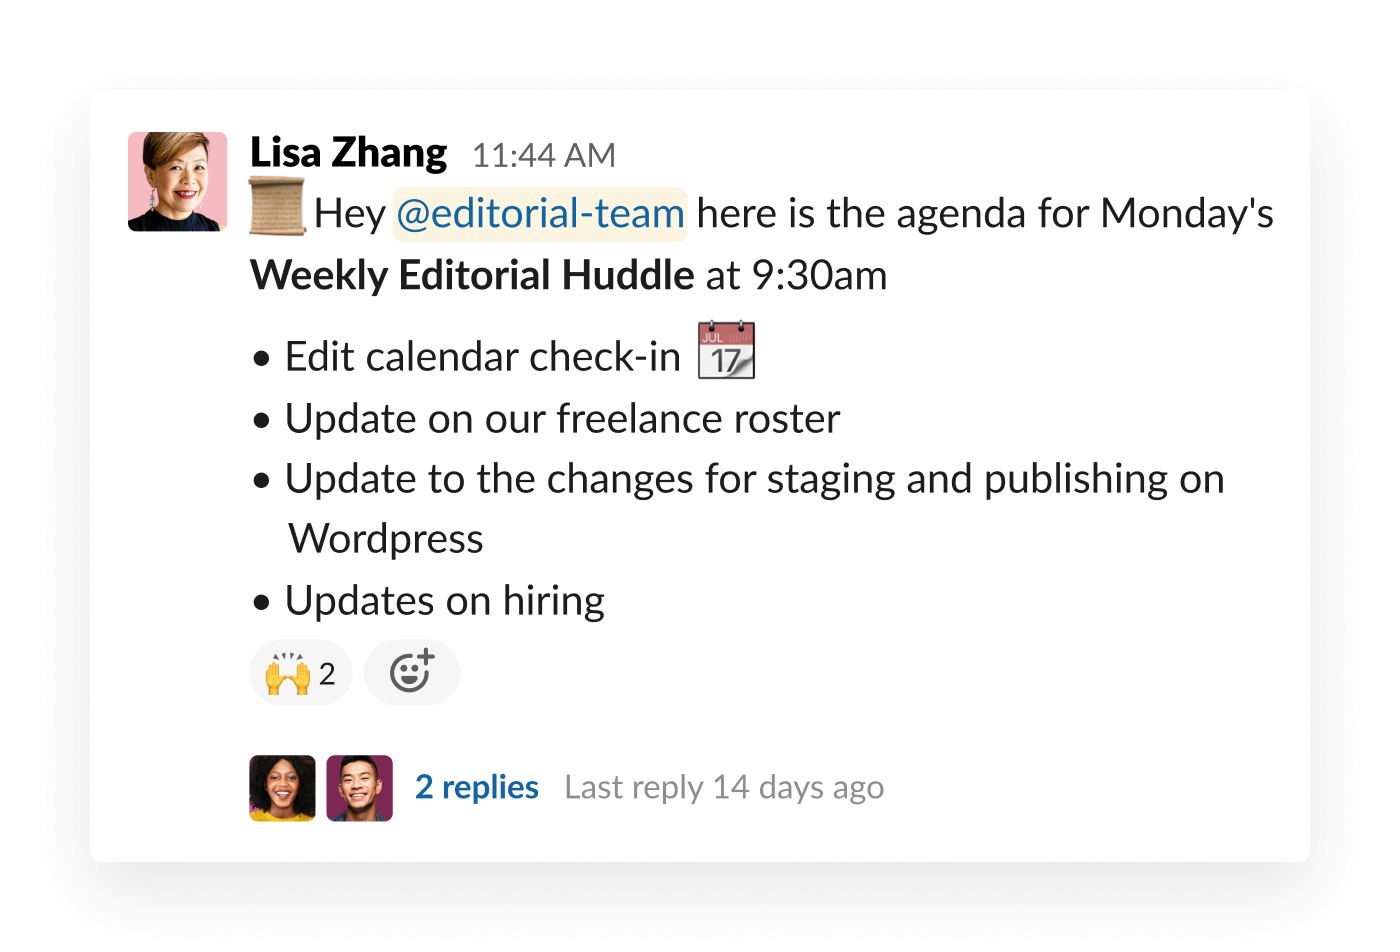 slack post about meeting agenda with teammate feedback in thread